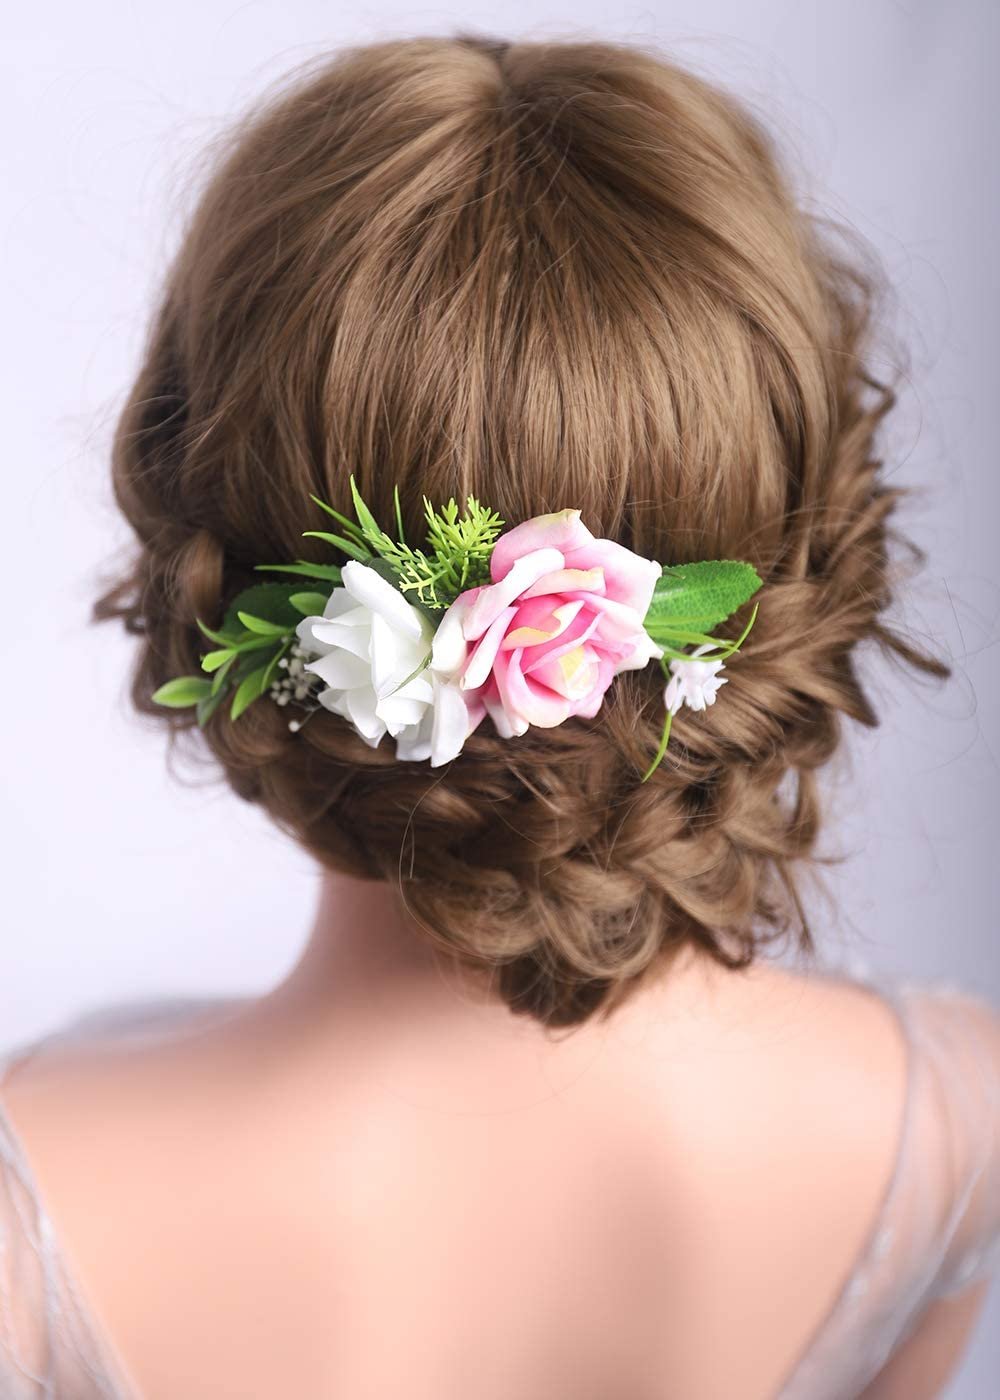 Succulents and Flowers Bridal Hair Comb Off White Green Pink and Grey Garden Wedding Bridesmaids Gift Floral Hair Piece Blush Pink Rose